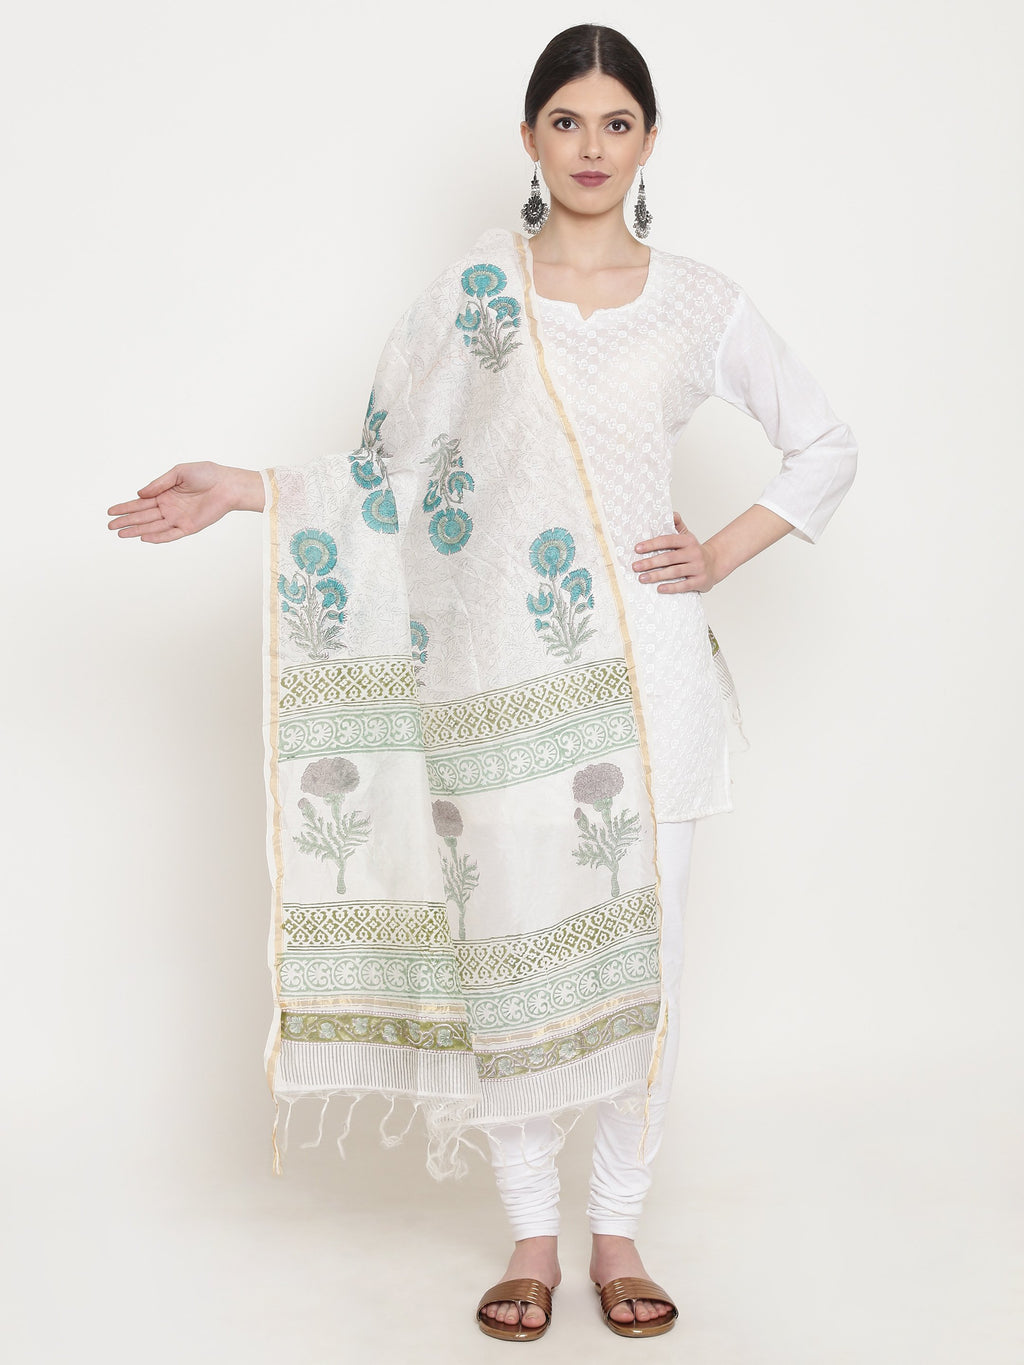 Exotic Chanderi Silk Handmade Dupatta-Dupatta-Kalakari India-BHKPDP0006-Chanderi, Dupatta, Geographical Indication, Hand Blocks, Hand Crafted, Heritage Prints, Silk, Sustainable Fabrics-[Linen,Ethnic,wear,Fashionista,Handloom,Handicraft,Indigo,blockprint,block,print,Cotton,Chanderi,Blue, latest,classy,party,bollywood,trendy,summer,style,traditional,formal,elegant,unique,style,hand,block,print, dabu,booti,gift,present,glamorous,affordable,collectible,Sari,Saree,printed, holi, Diwali, birthday, an